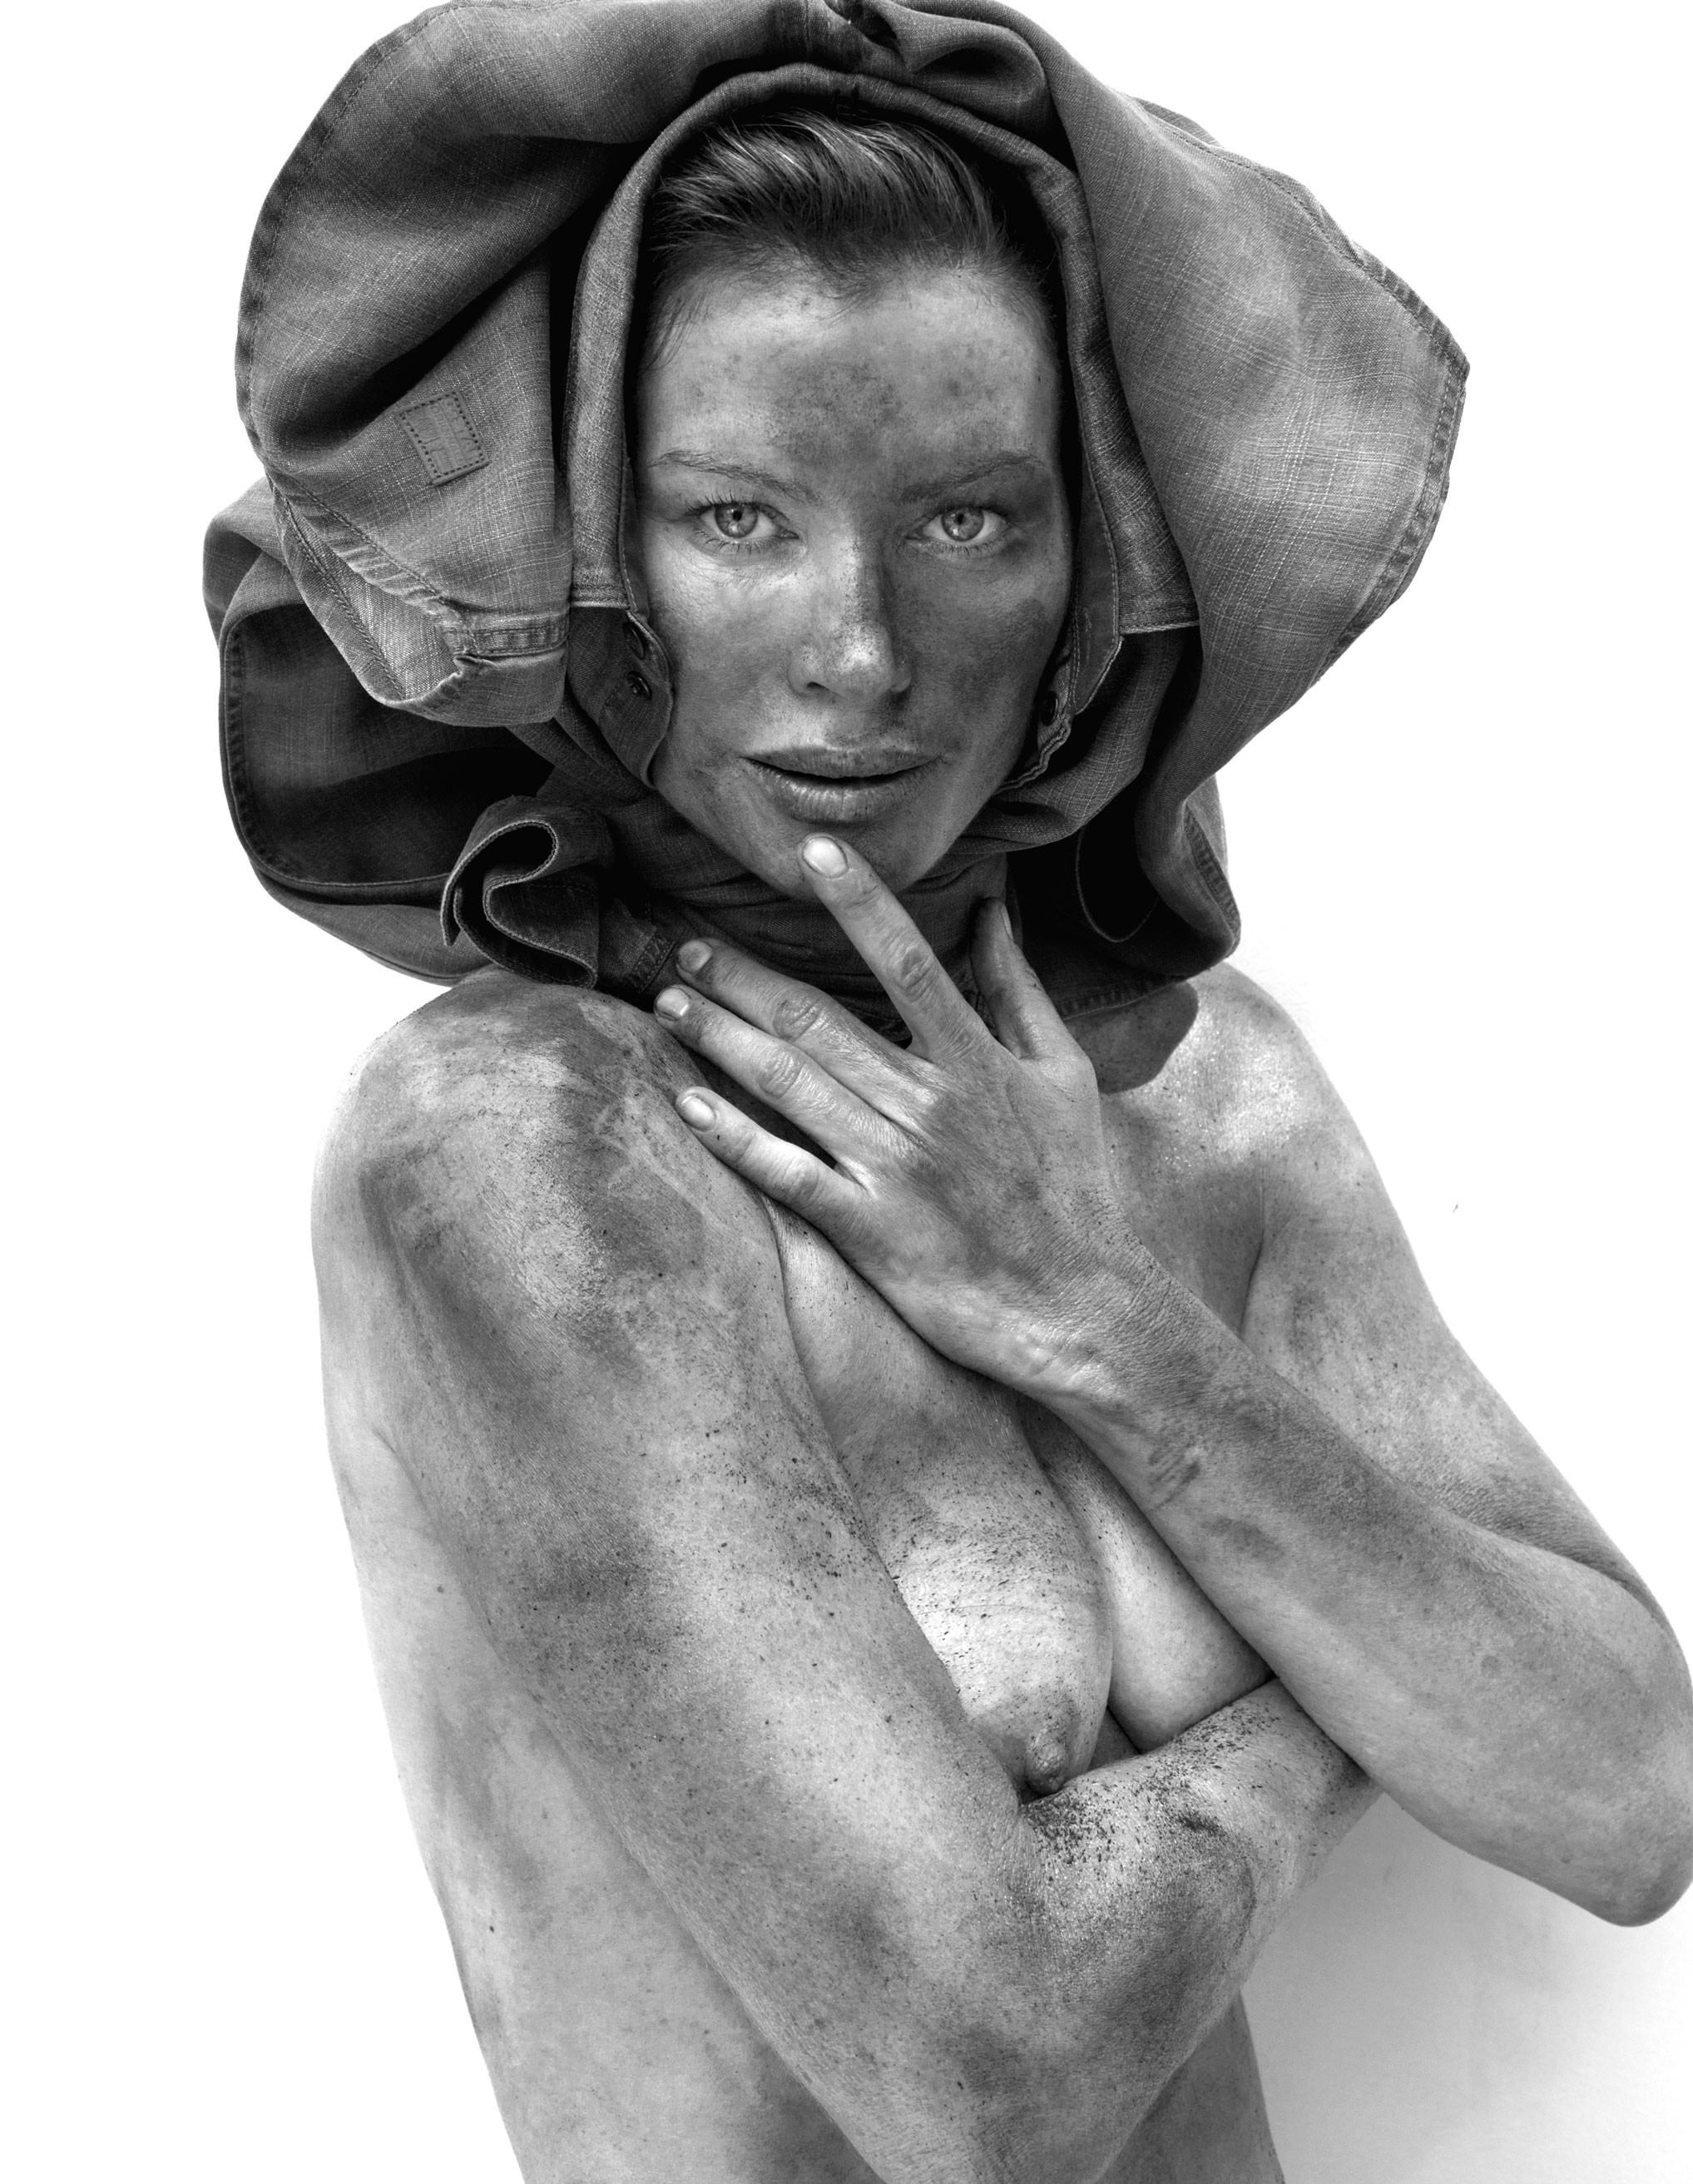 Carre Otis Topless 1 TheFappening.nu